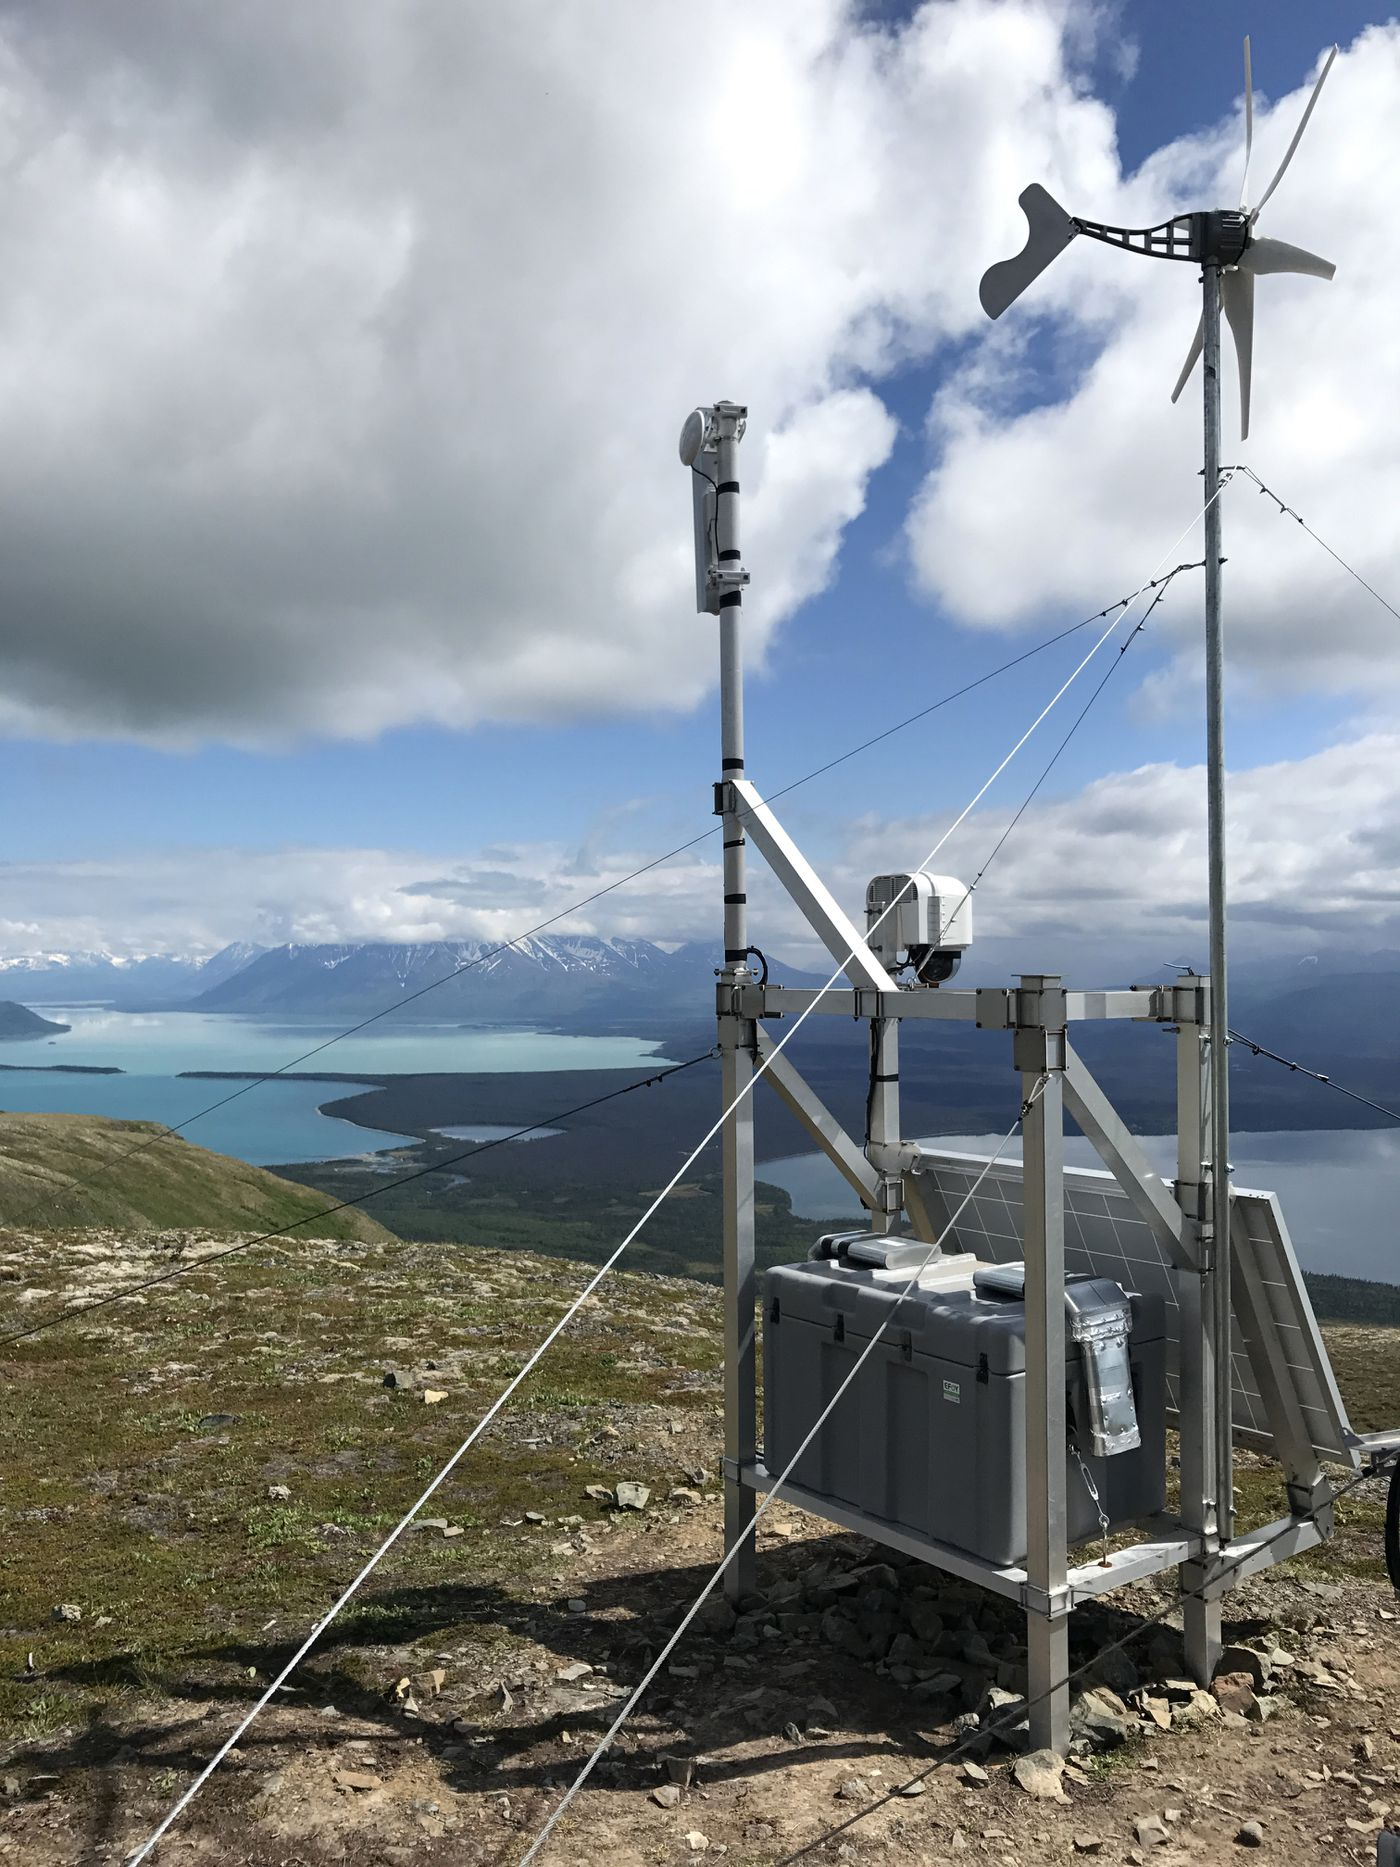 One Explore.org camera in Katmai National Park and Preserve overlooks Dumpling Mountain. Cameras are powered with solar generators and kept in self-cleaning housings. (Courtesy of Explore.org)